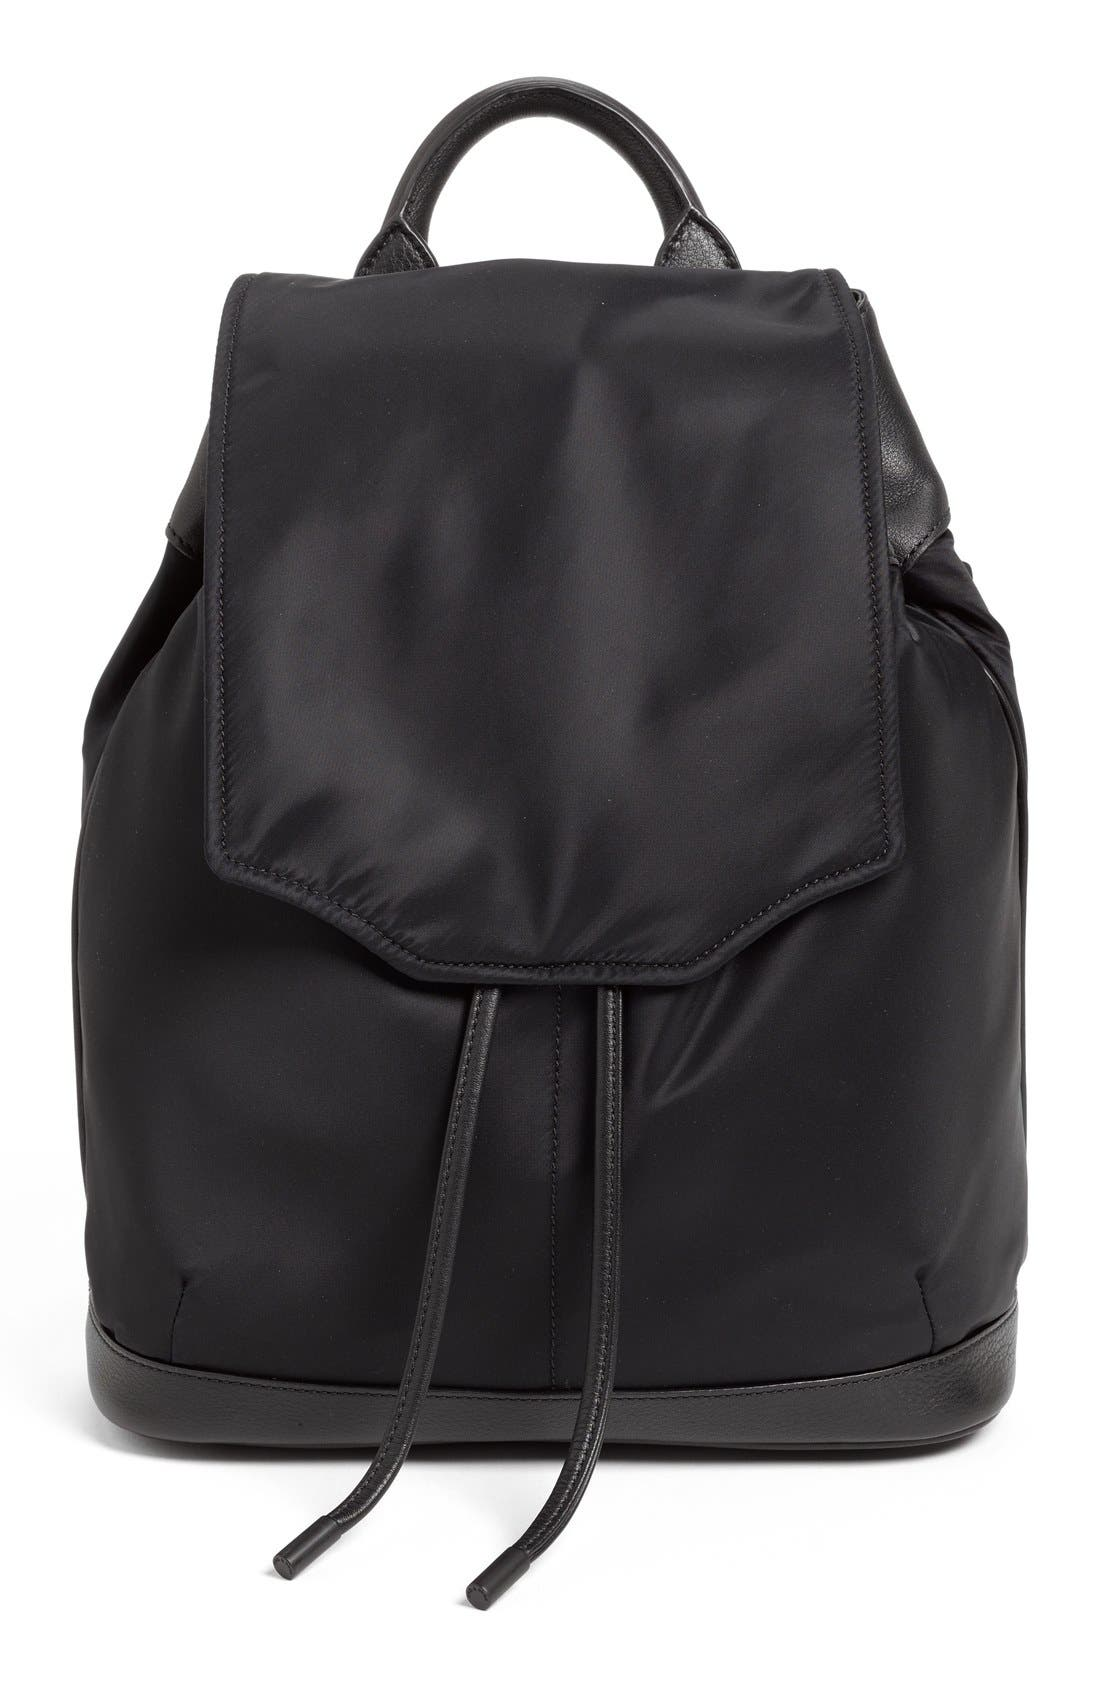 RAG & BONE,                             'Pilot' Nylon Backpack,                             Main thumbnail 1, color,                             002